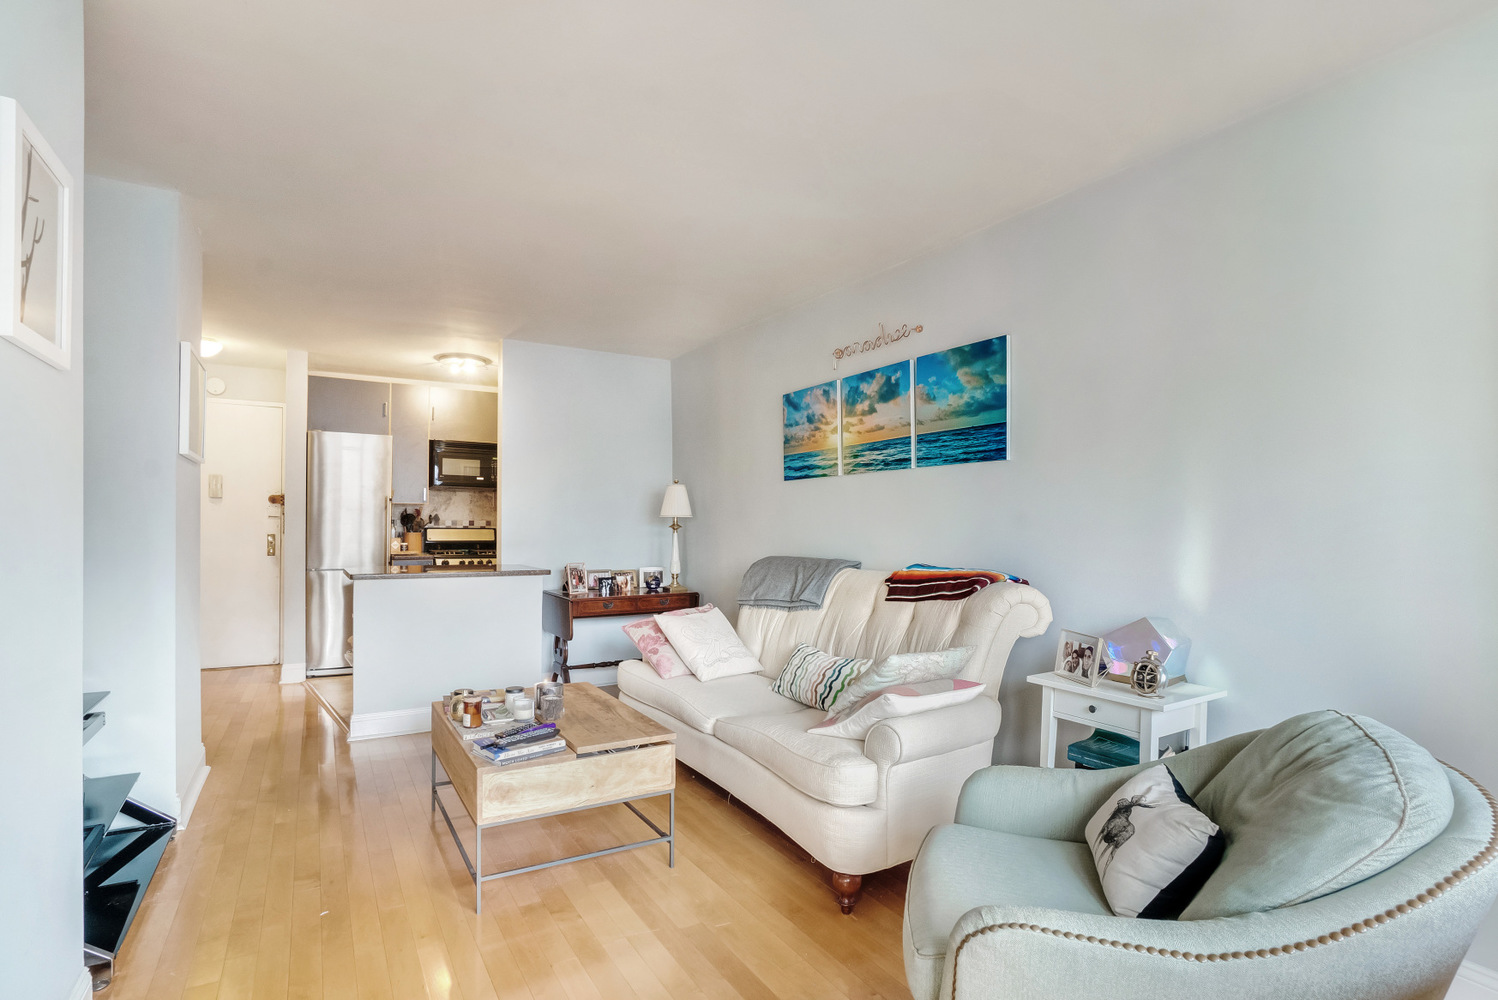 245 East 24th Street, Unit 9B Manhattan, NY 10010